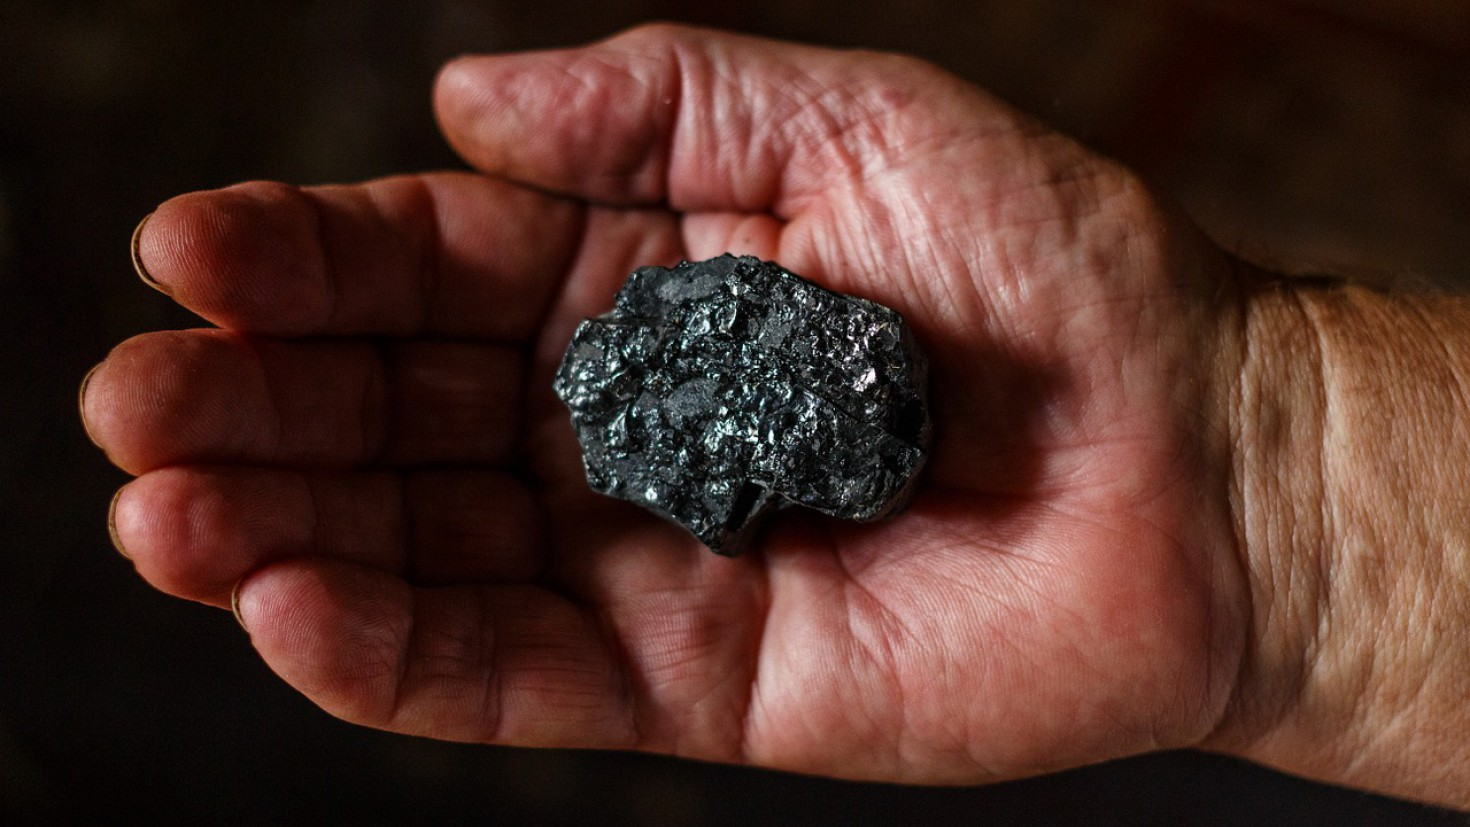 The Chinese emissions story is really a coal story. The growth in non-fossil energy sources in China has been truly impressive, but don't let this cover up the more complex coal story. photo: pixabay